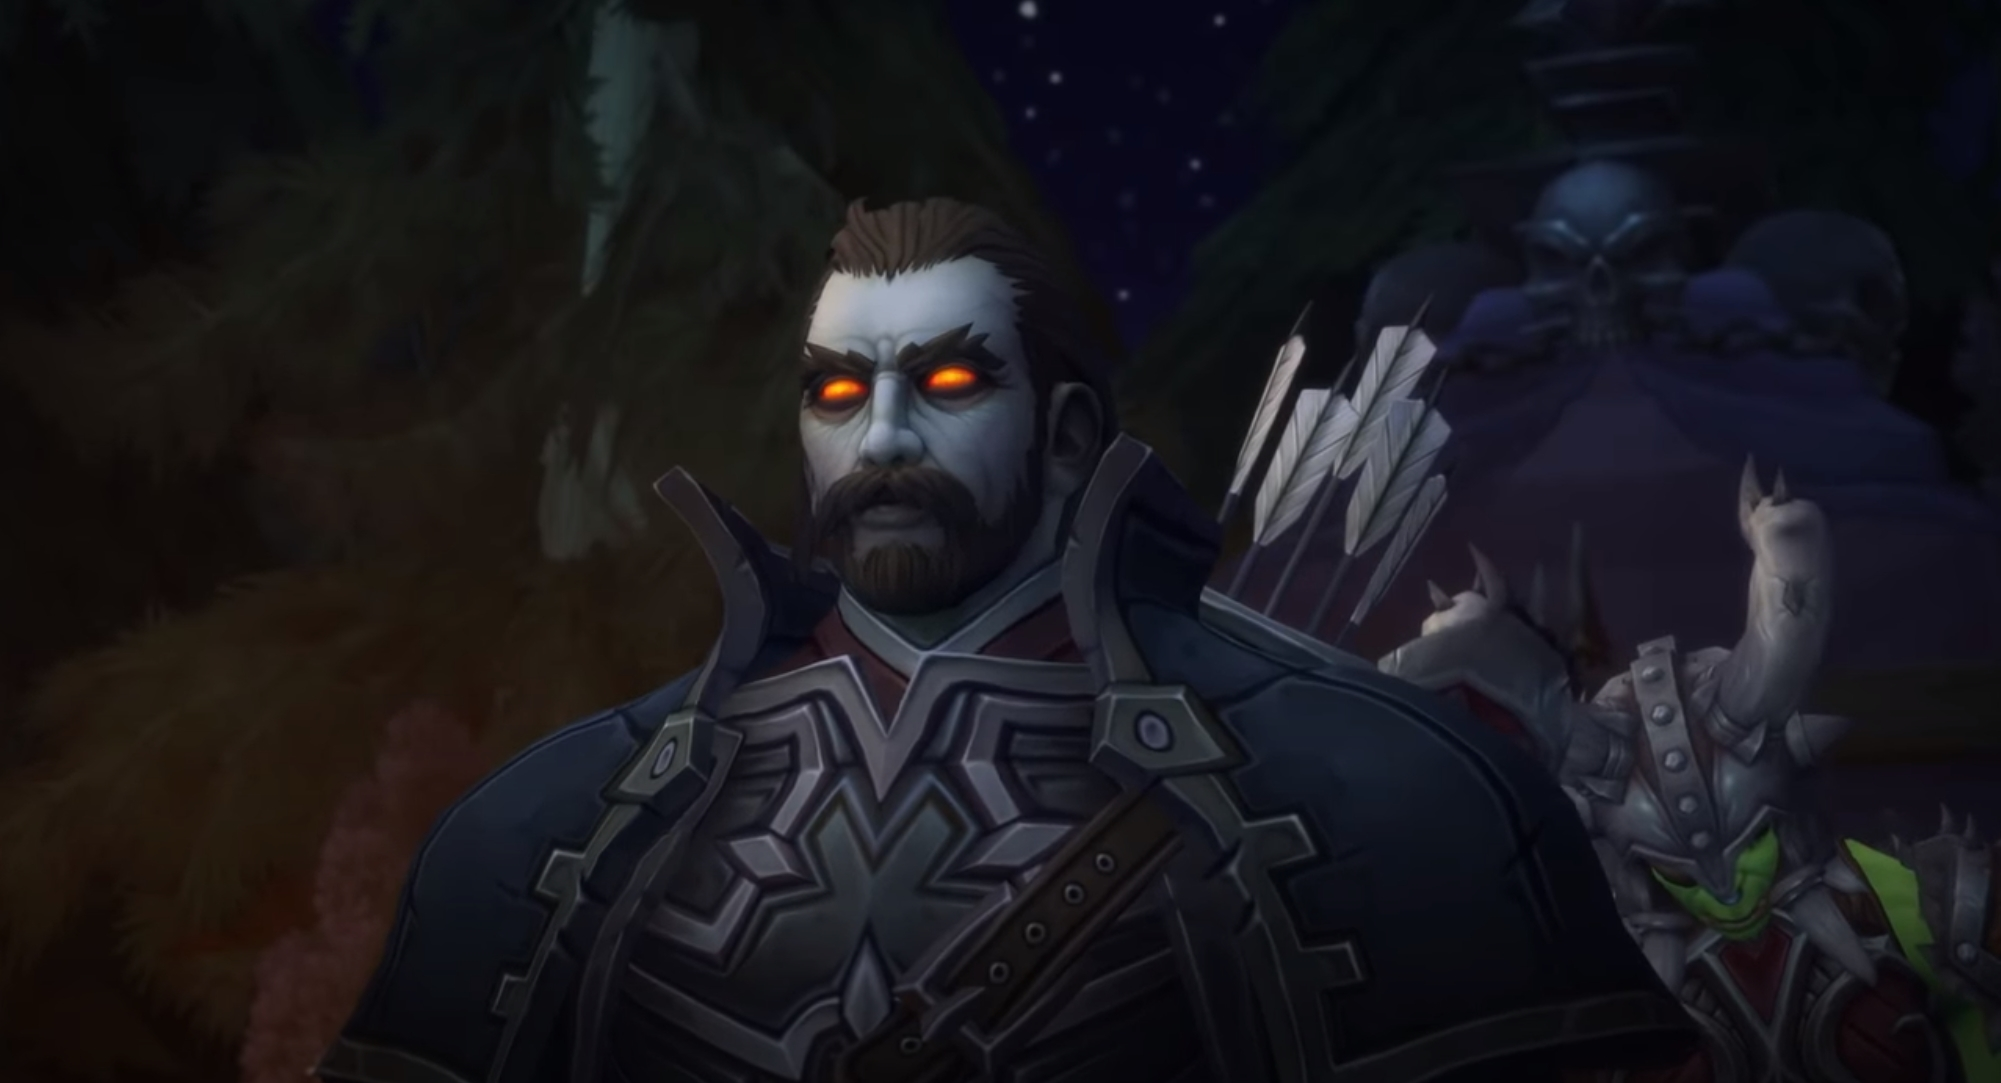 World Of Warcraft: Shadowlands Weekly Reset Brings First Implementation of New Storming Mythic+ Affix